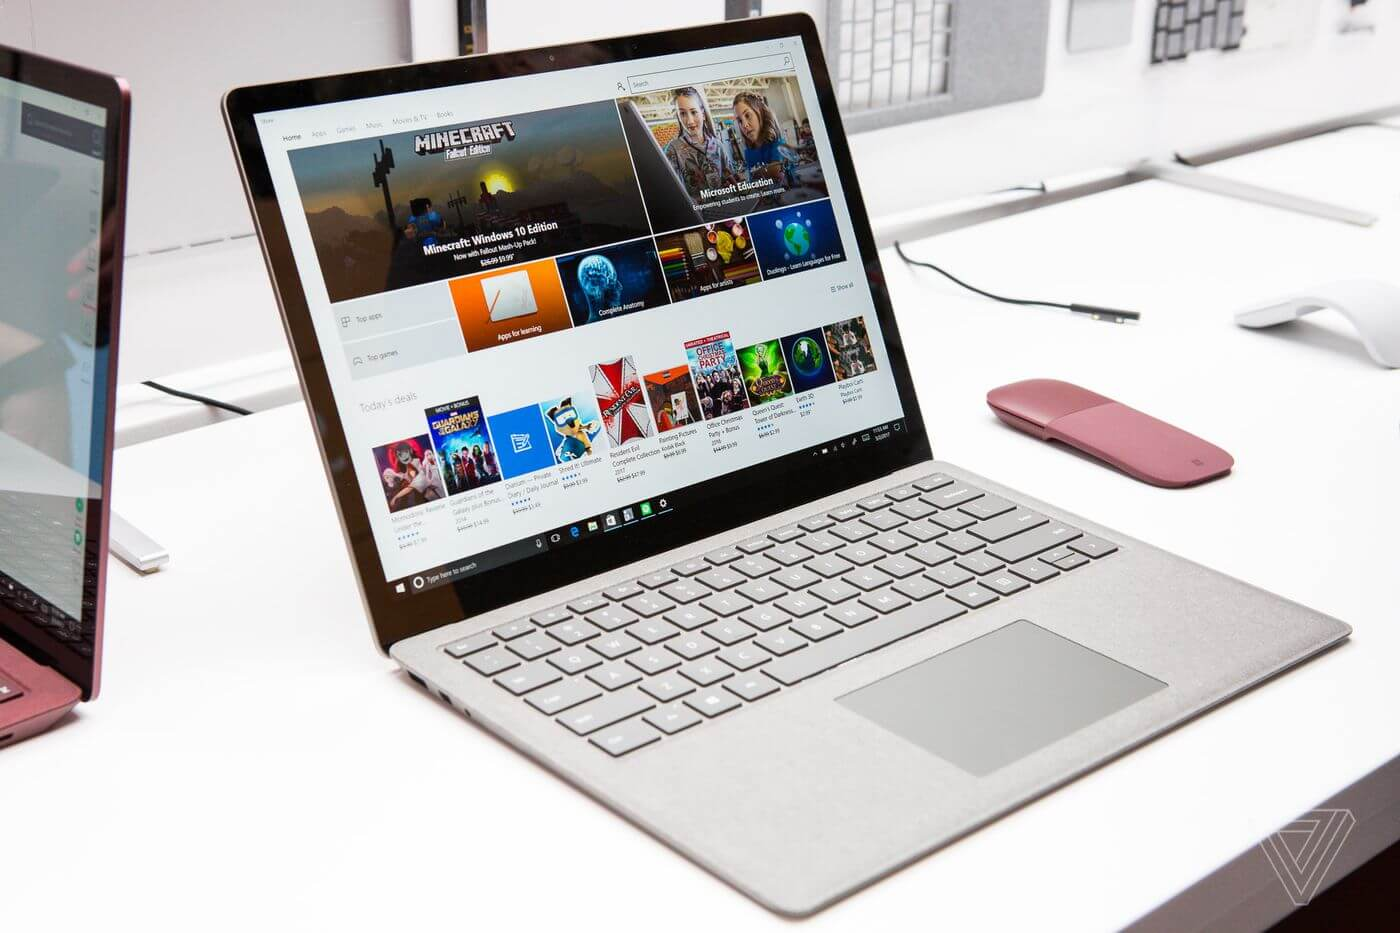 How to Disk Cleanup Windows 10: Detailed Solution Guide